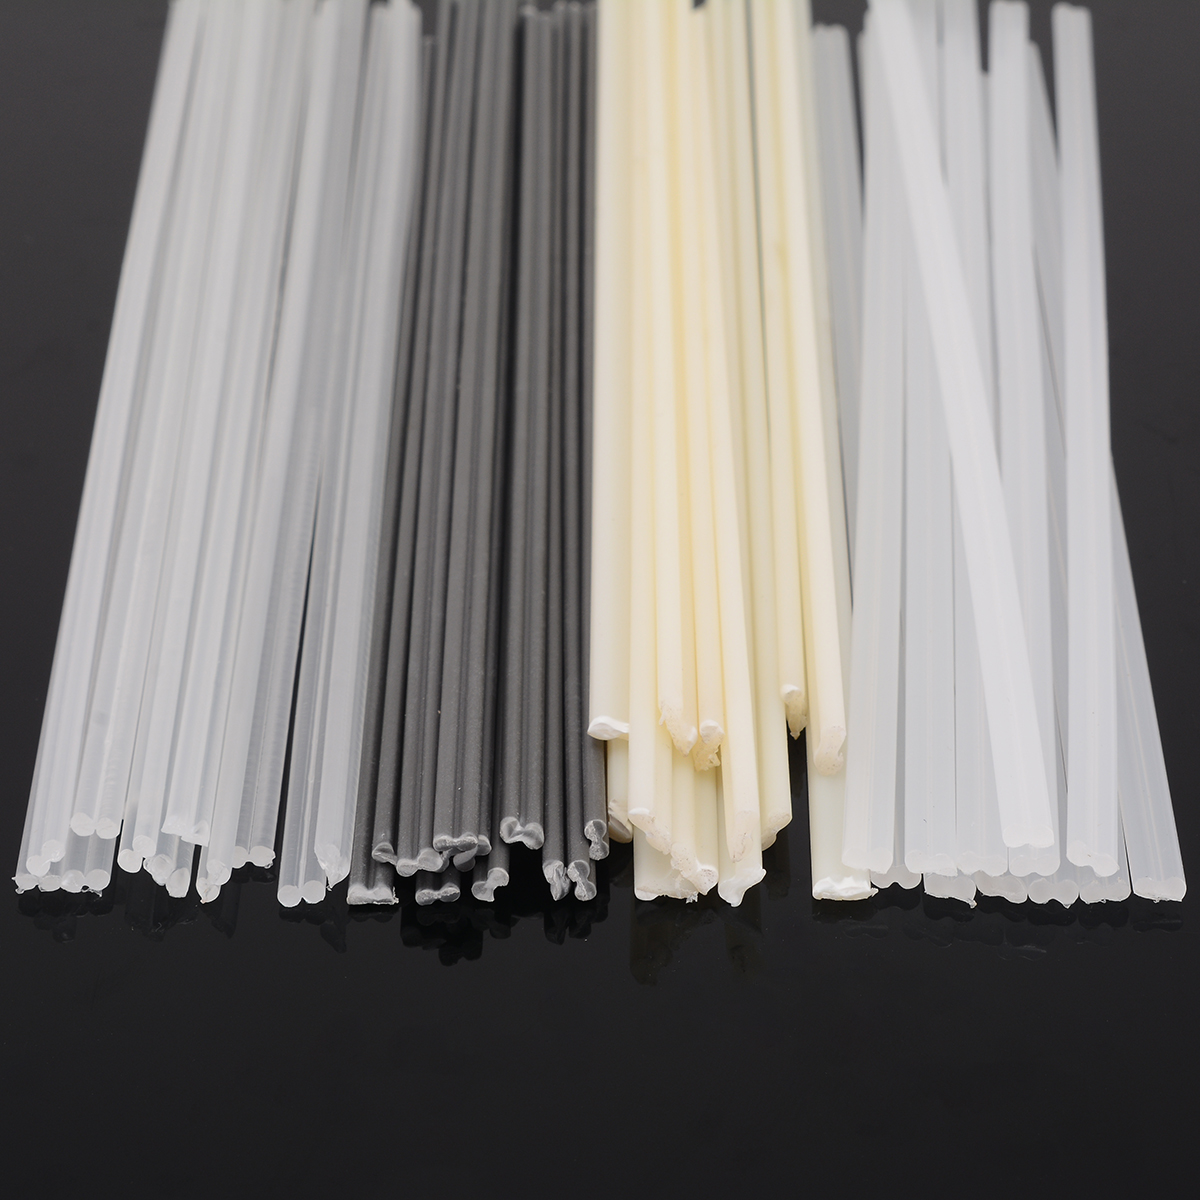 50pcs 200mm Length ABS/PP/PVC/PE Plastic Welding Rods Car Bumper Repair Floor Solder Soldering Sticks for Welder